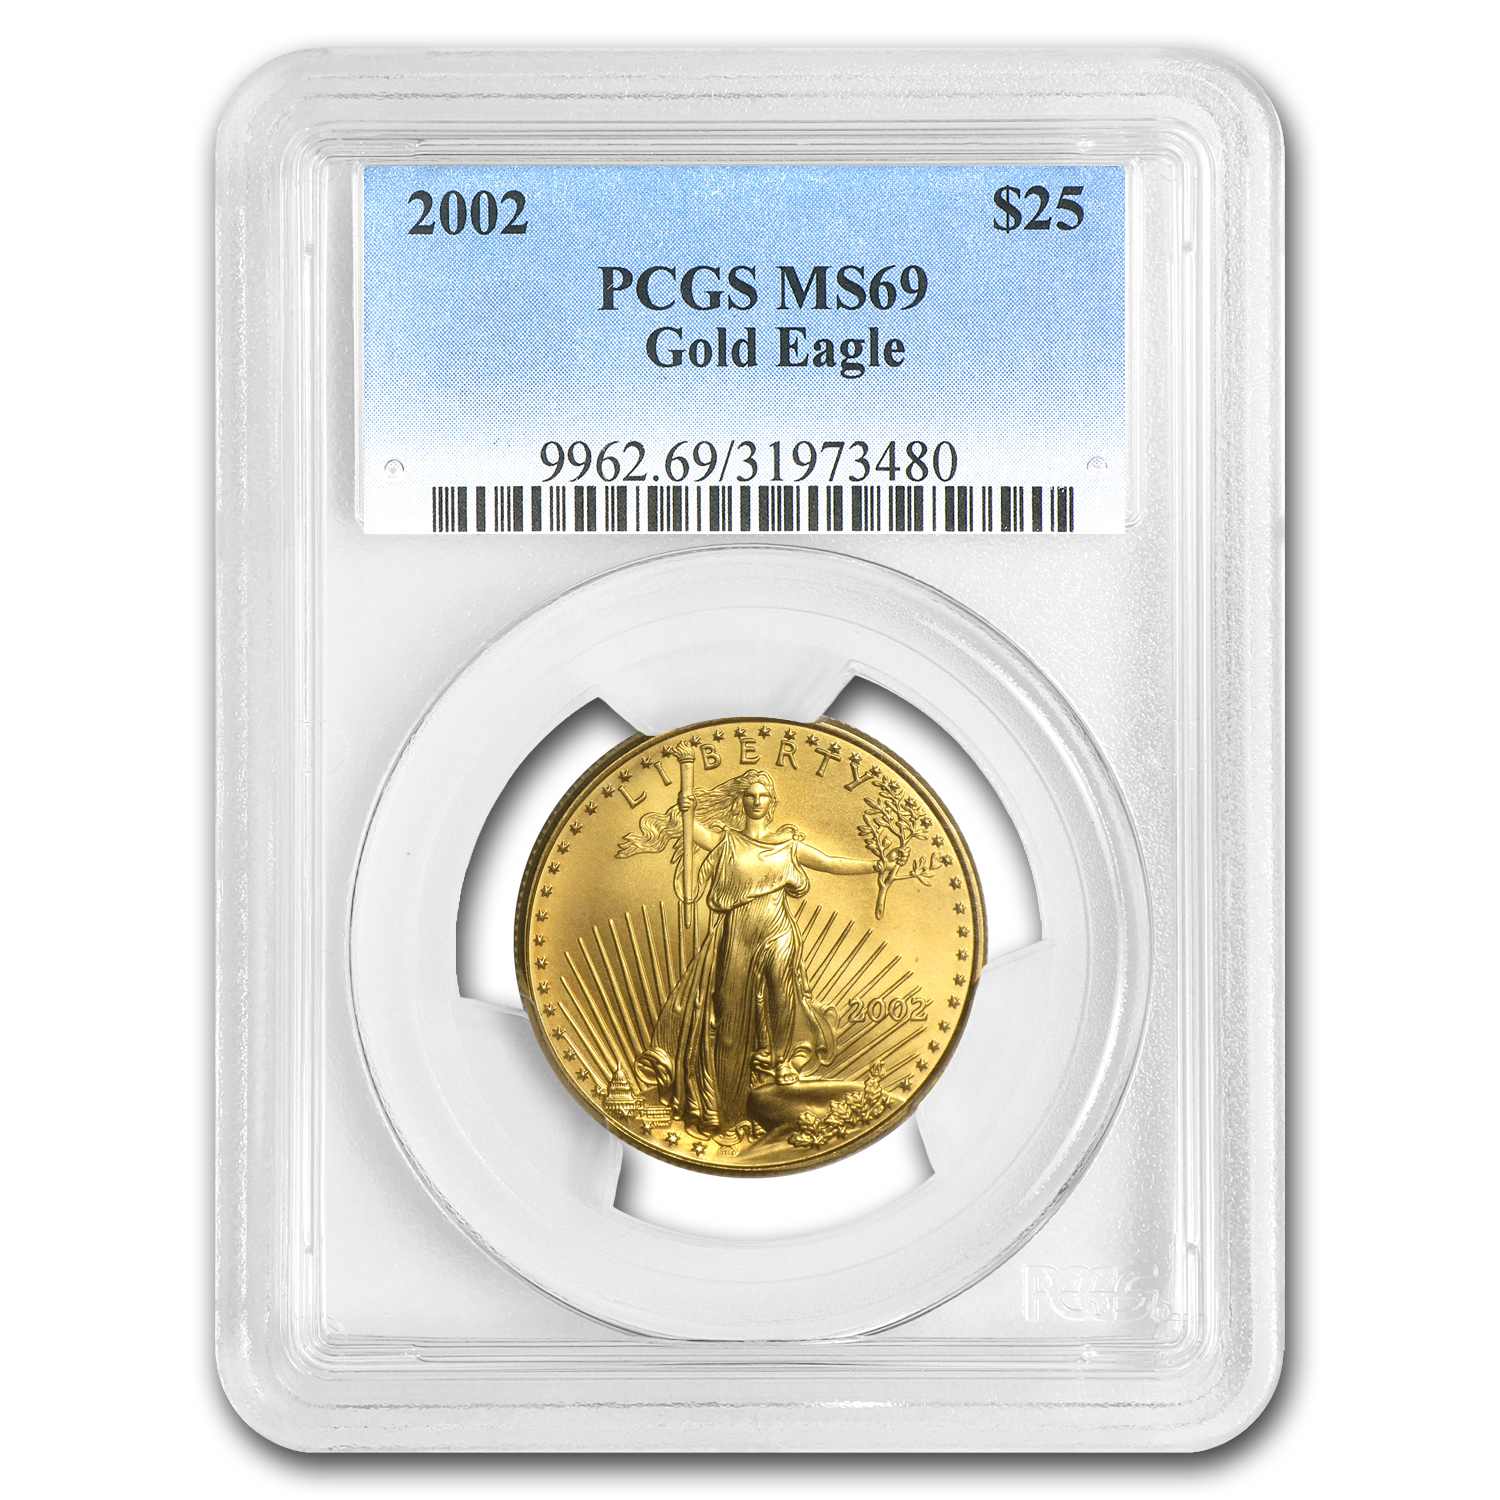 2002 1/2 oz Gold American Eagle MS-69 PCGS